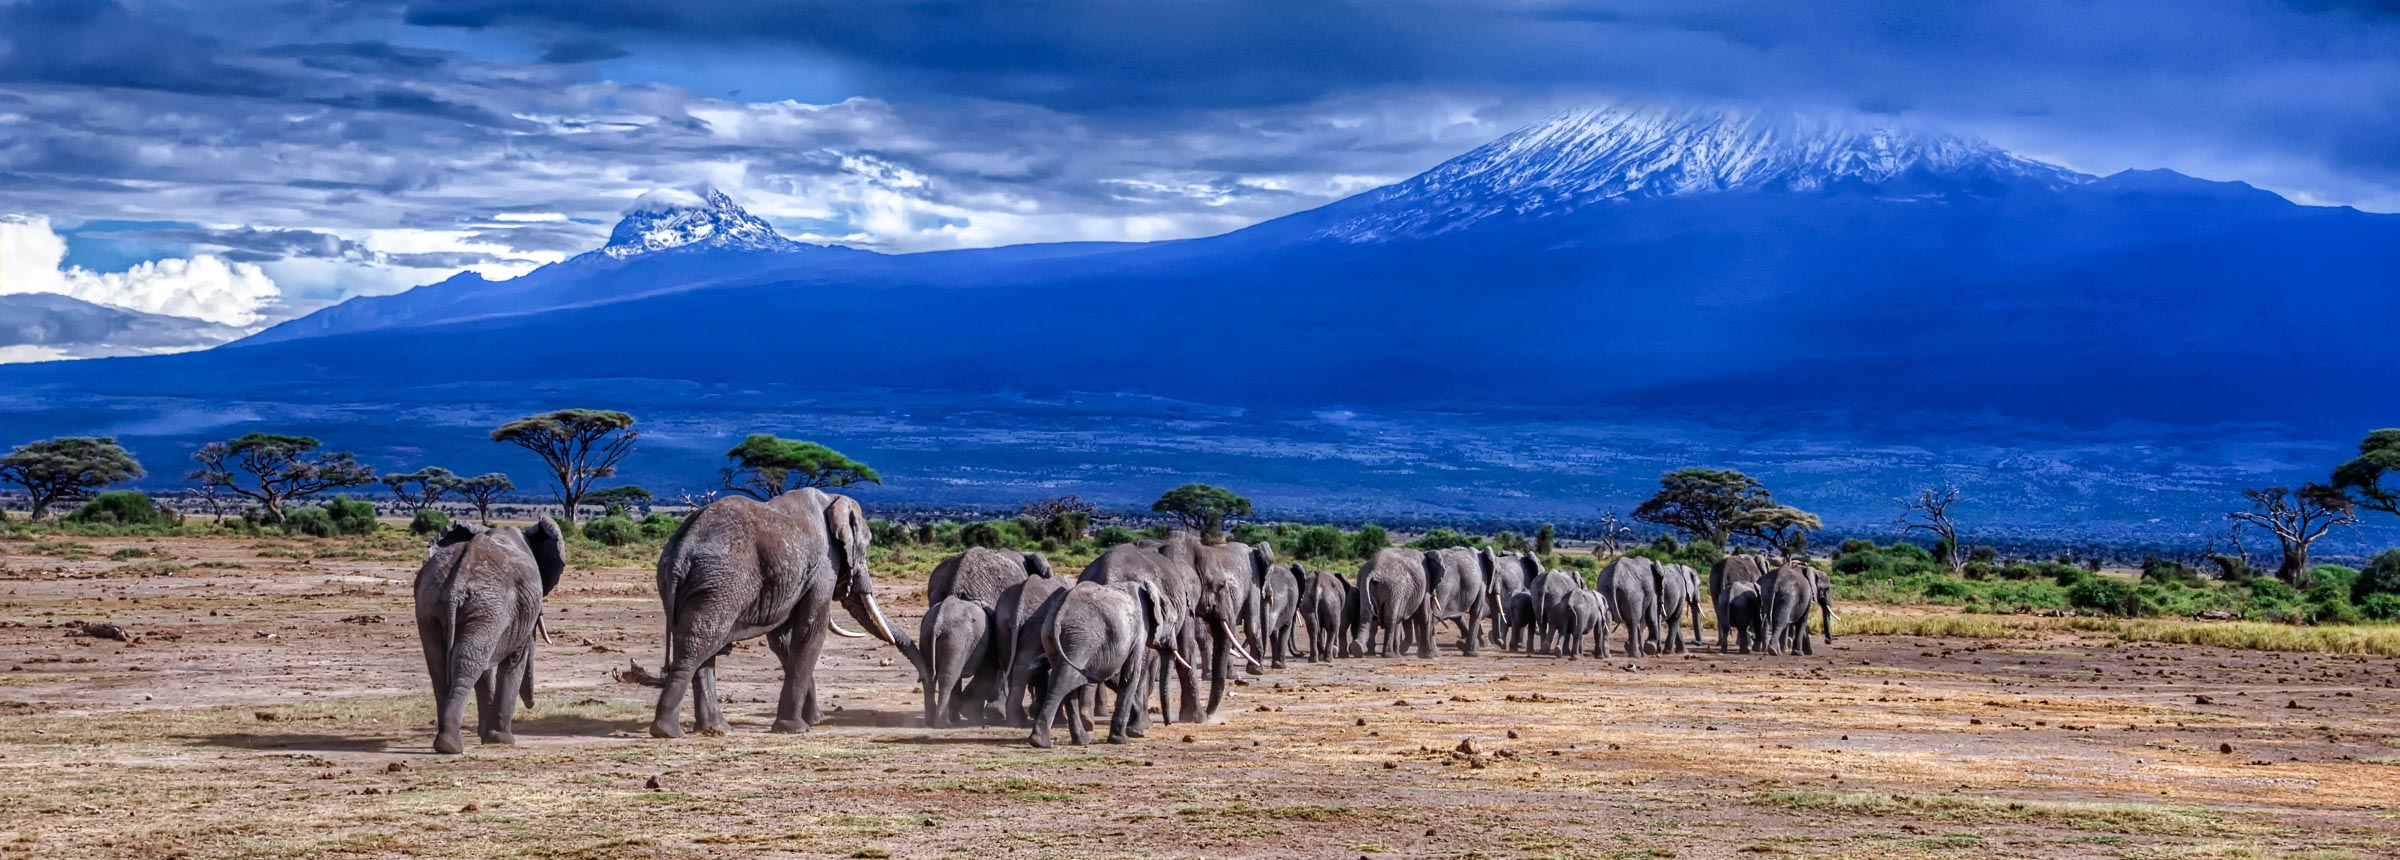 Elephants Head back to the Foothills of Mt. Kilimanjaro